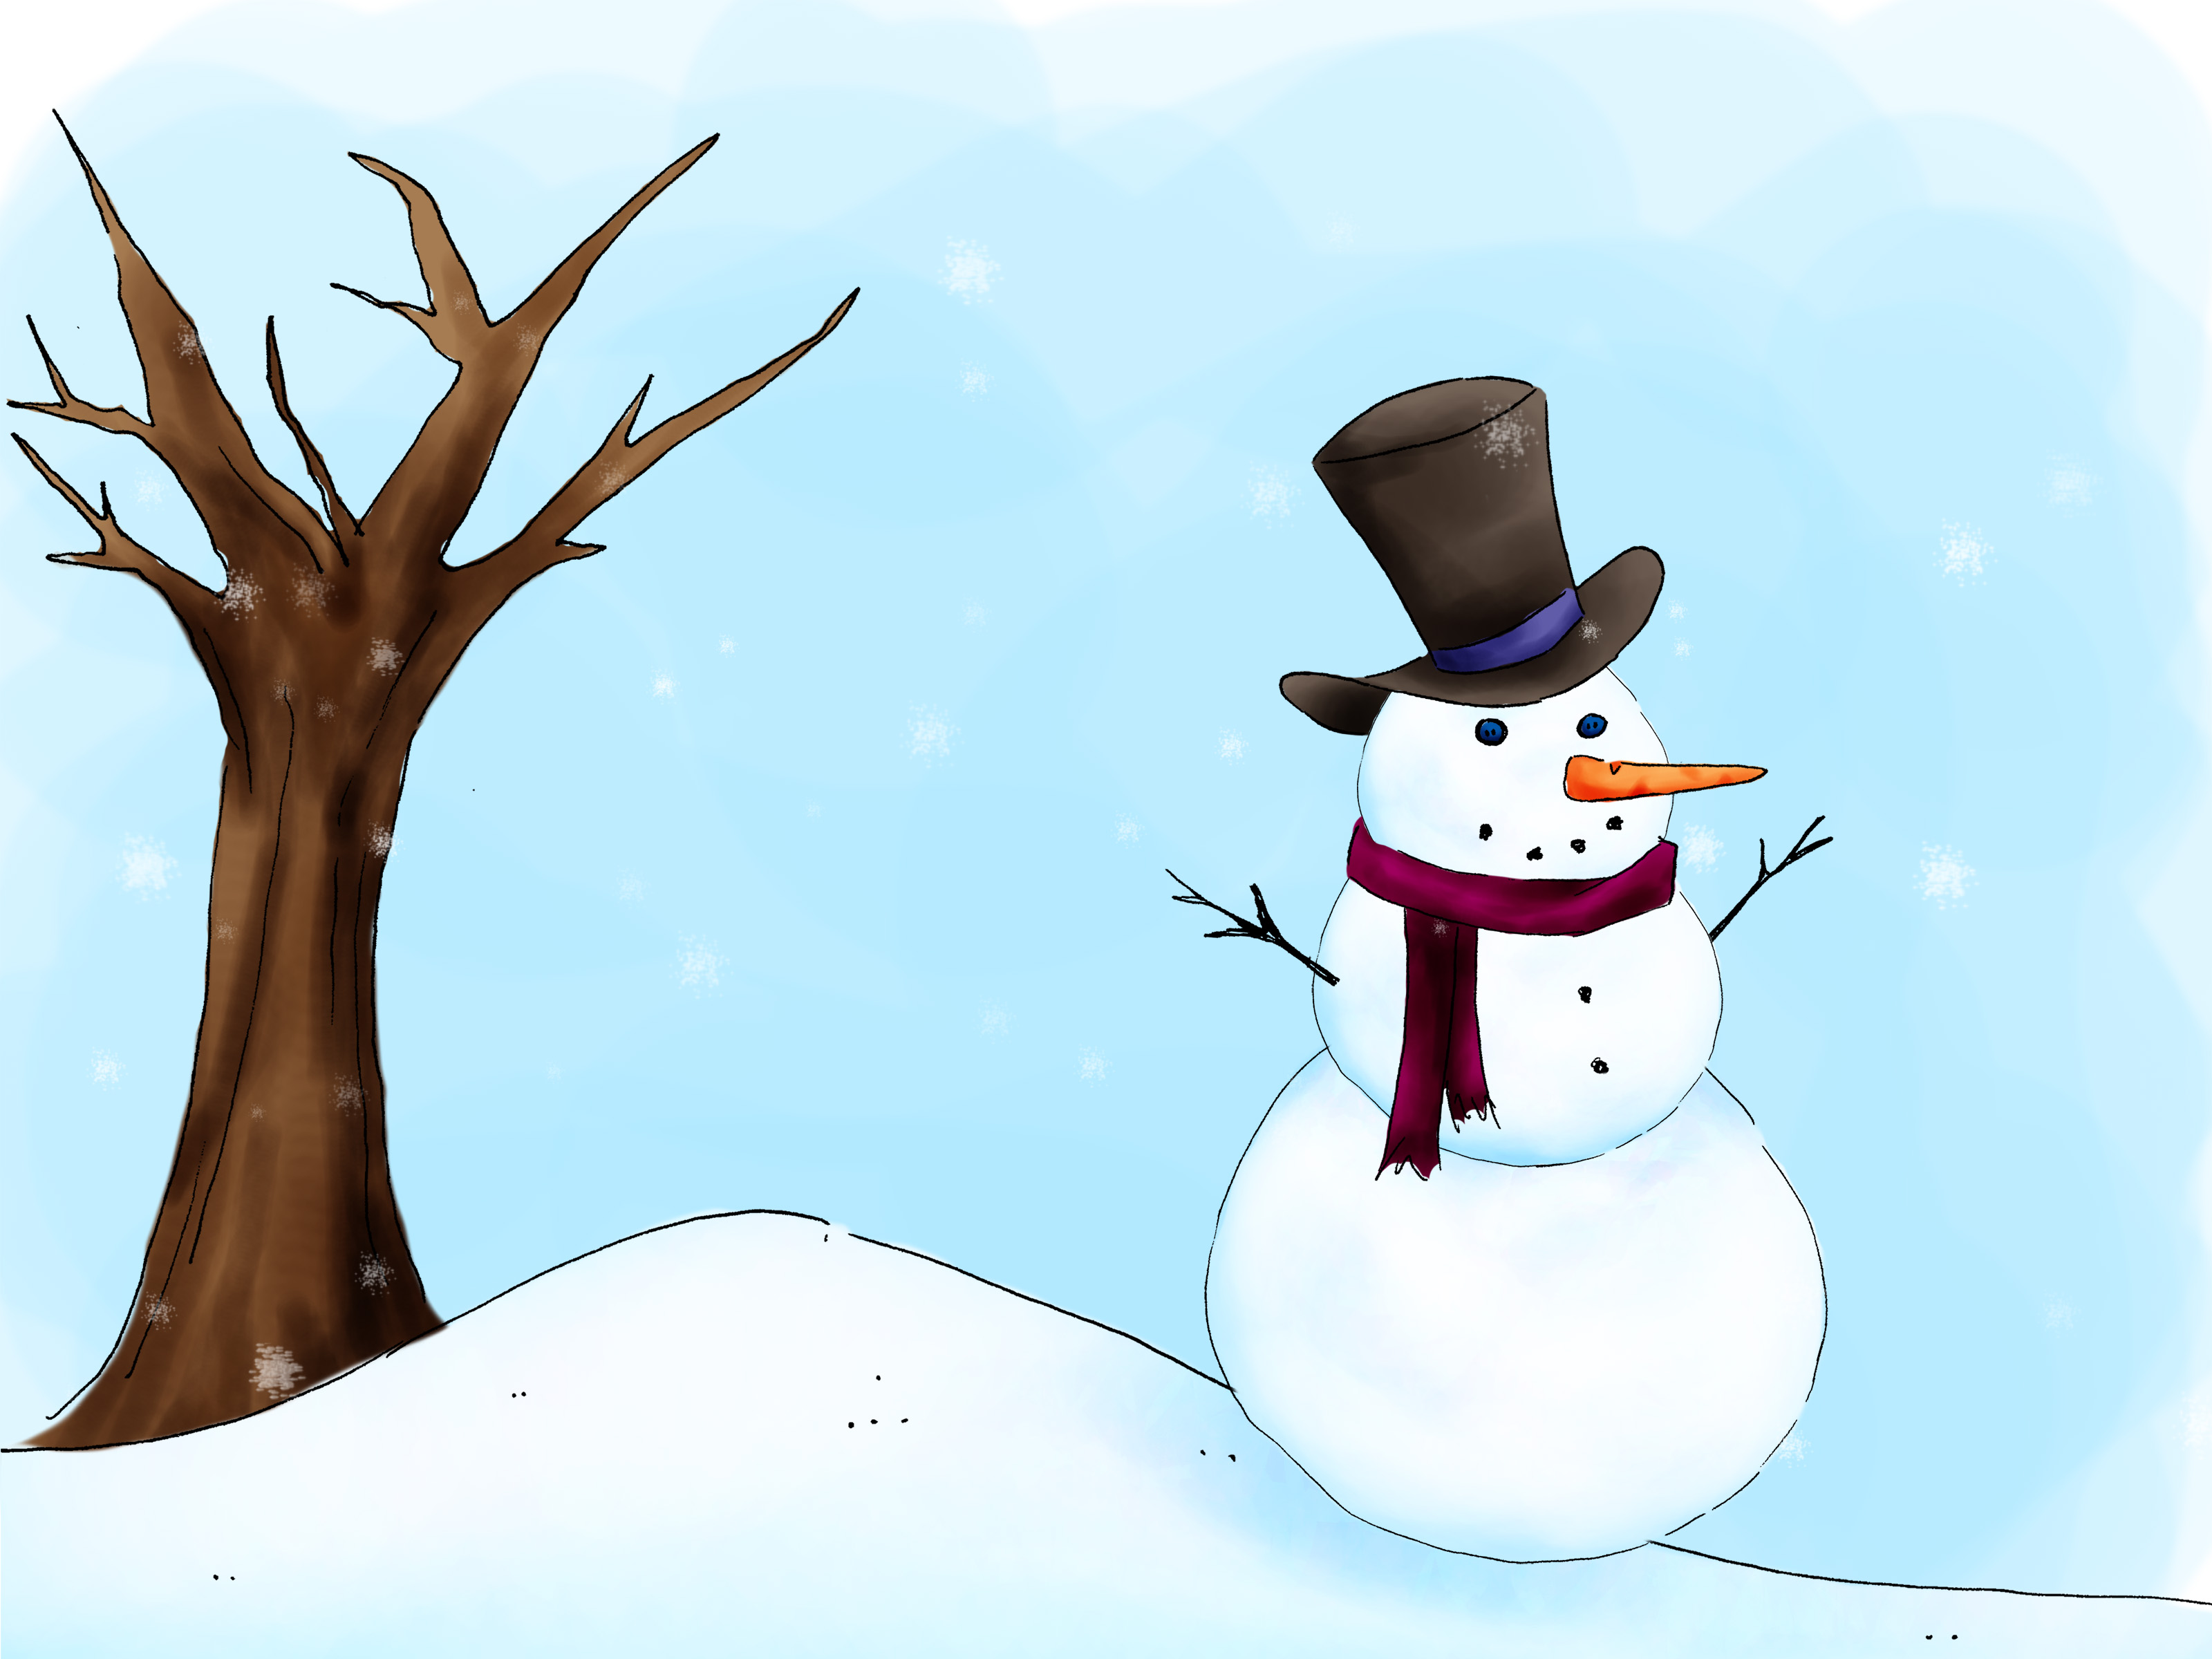 How To Make A Snowman With Pictures